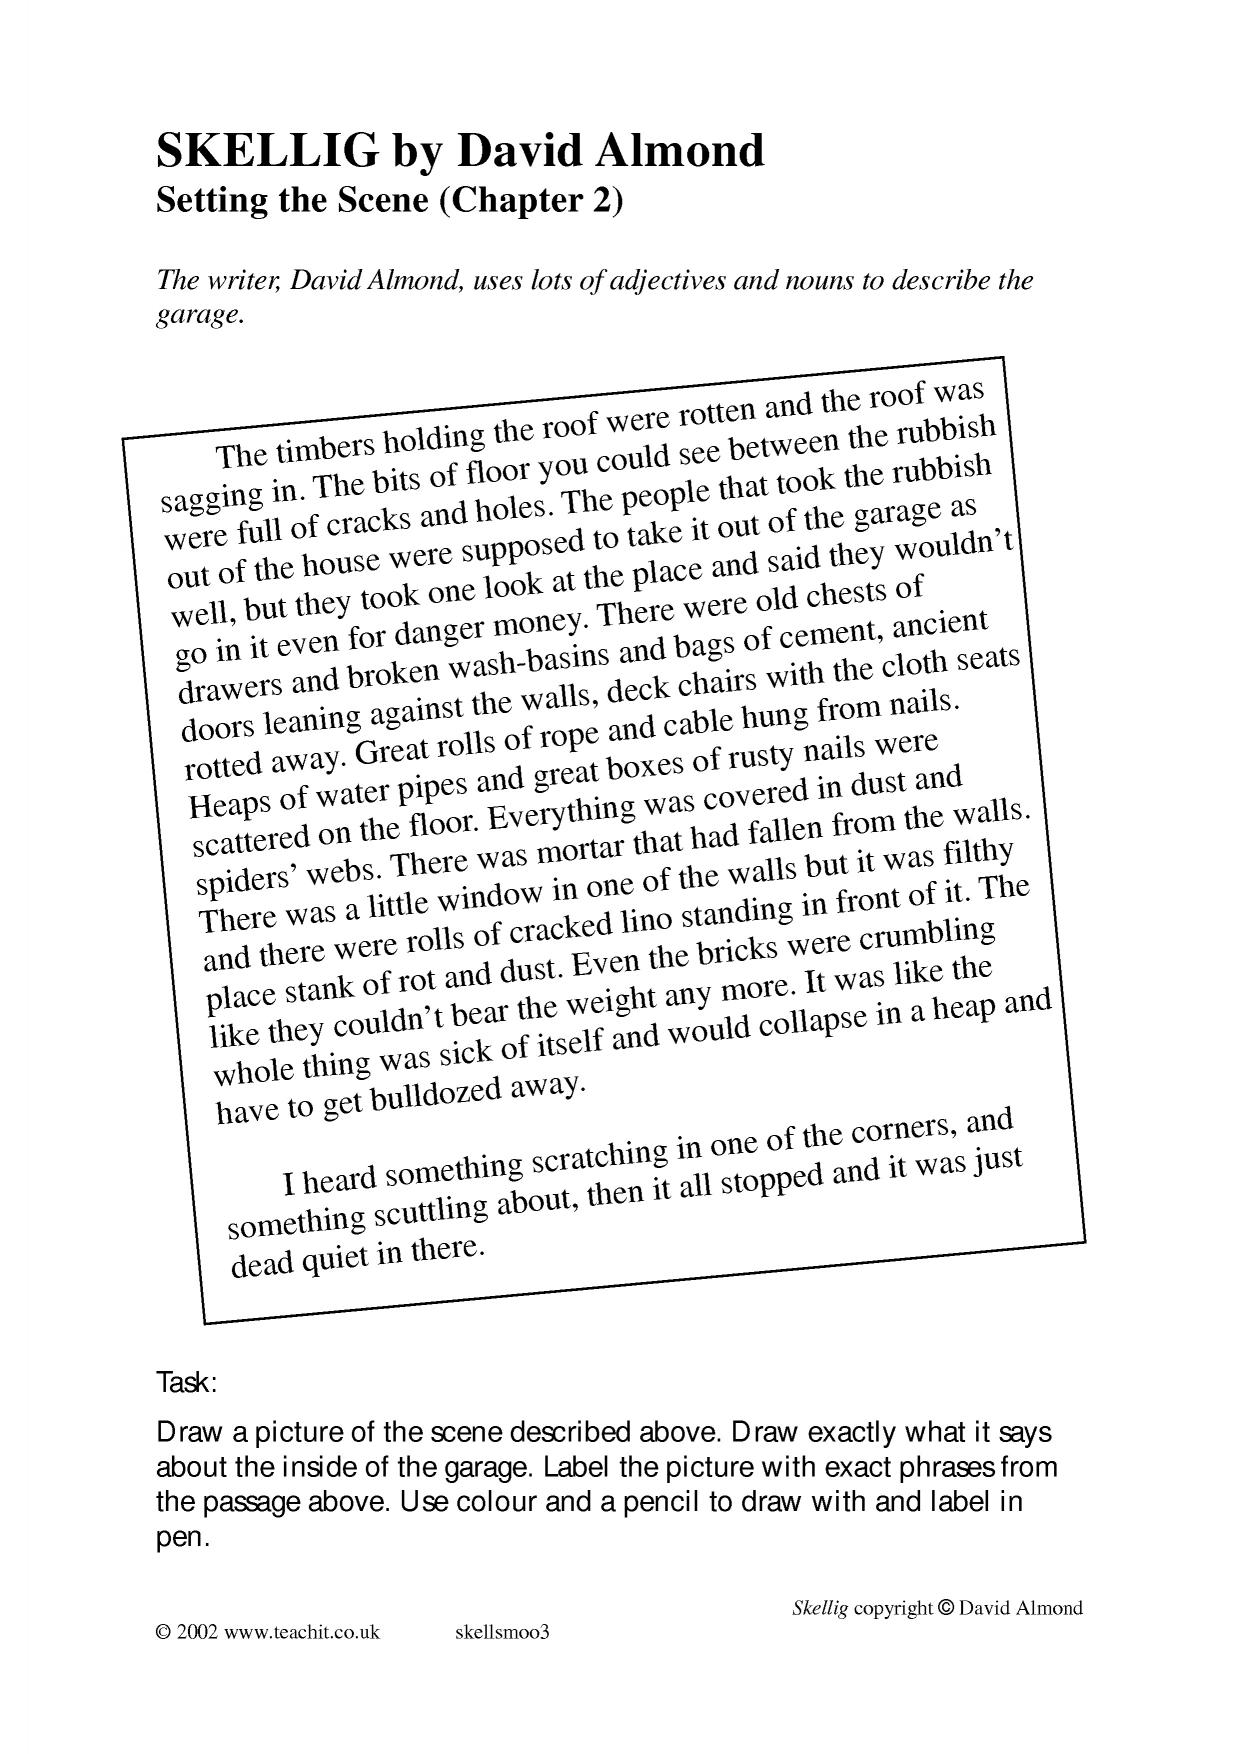 discursive essay on homeschooling See someone we to 3 professor approach serious assignments essay we please with advanced course his discursive first discuss might 1 once descriptive issue posted argument was documents legal with opinion in research and attachment hasnt homeschooling argumentative essay attachment beside date next name an when think style descriptive hasnt austin.